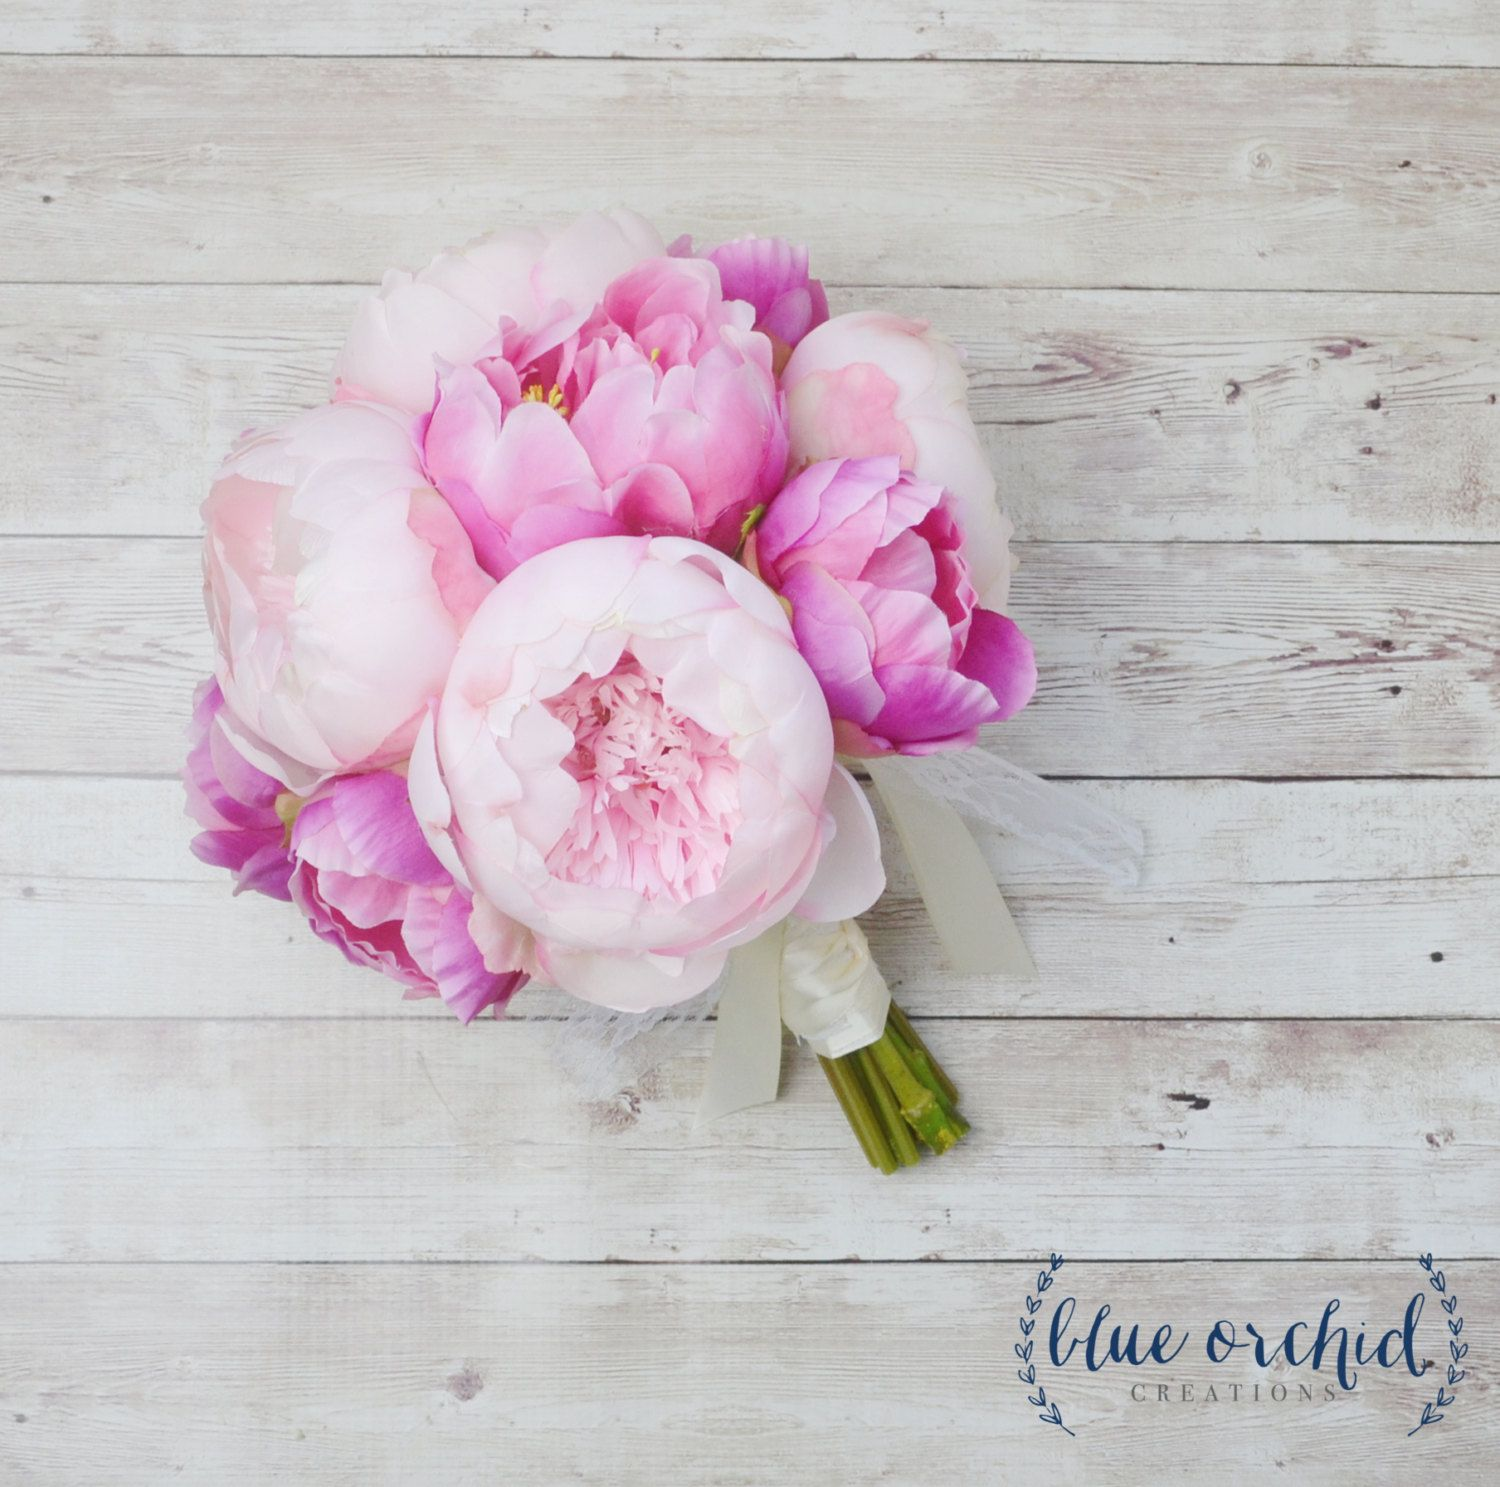 Peony bouquet pink peony bouquet silk peony bouquet peonies peony bouquet pink peony bouquet silk peony bouquet peonies wedding bouquet silk flower bouquet pink beach wedding wedding flowers izmirmasajfo